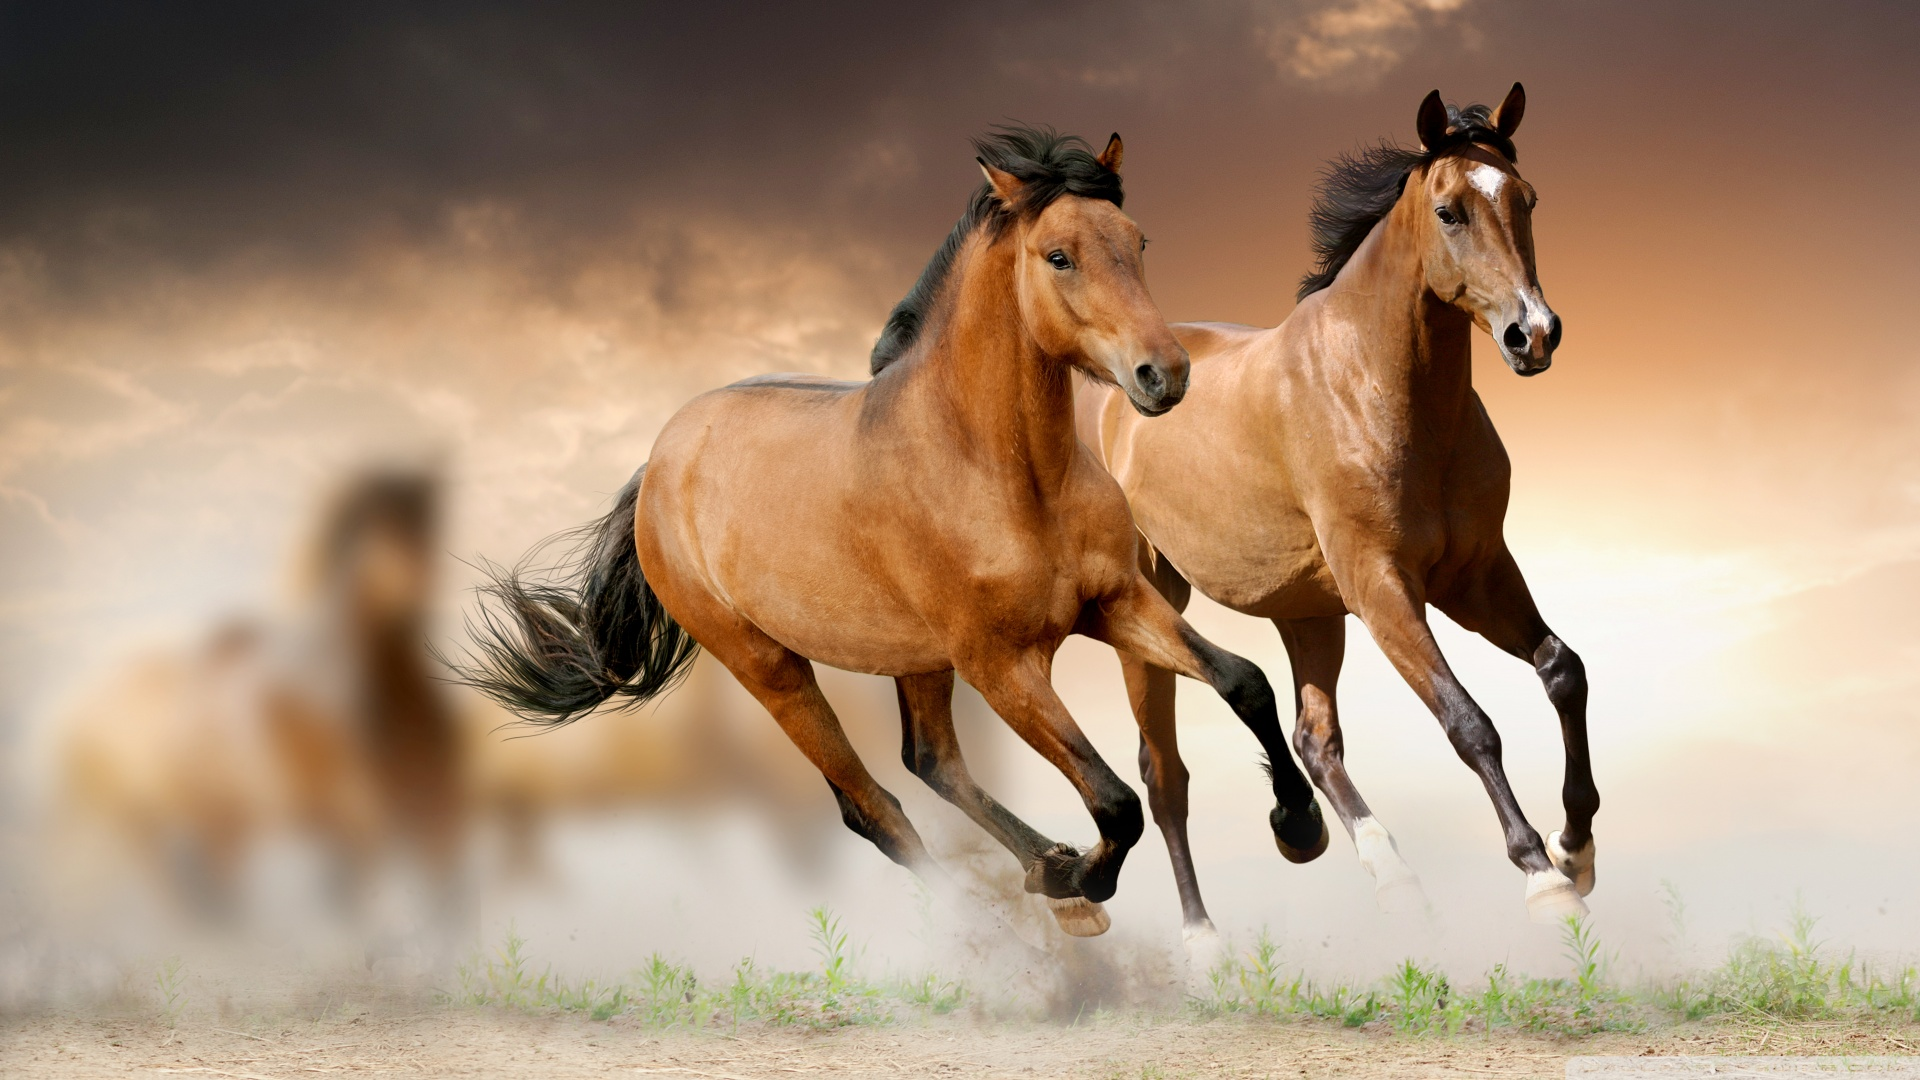 horses-14852-15511-hd-wallpapers